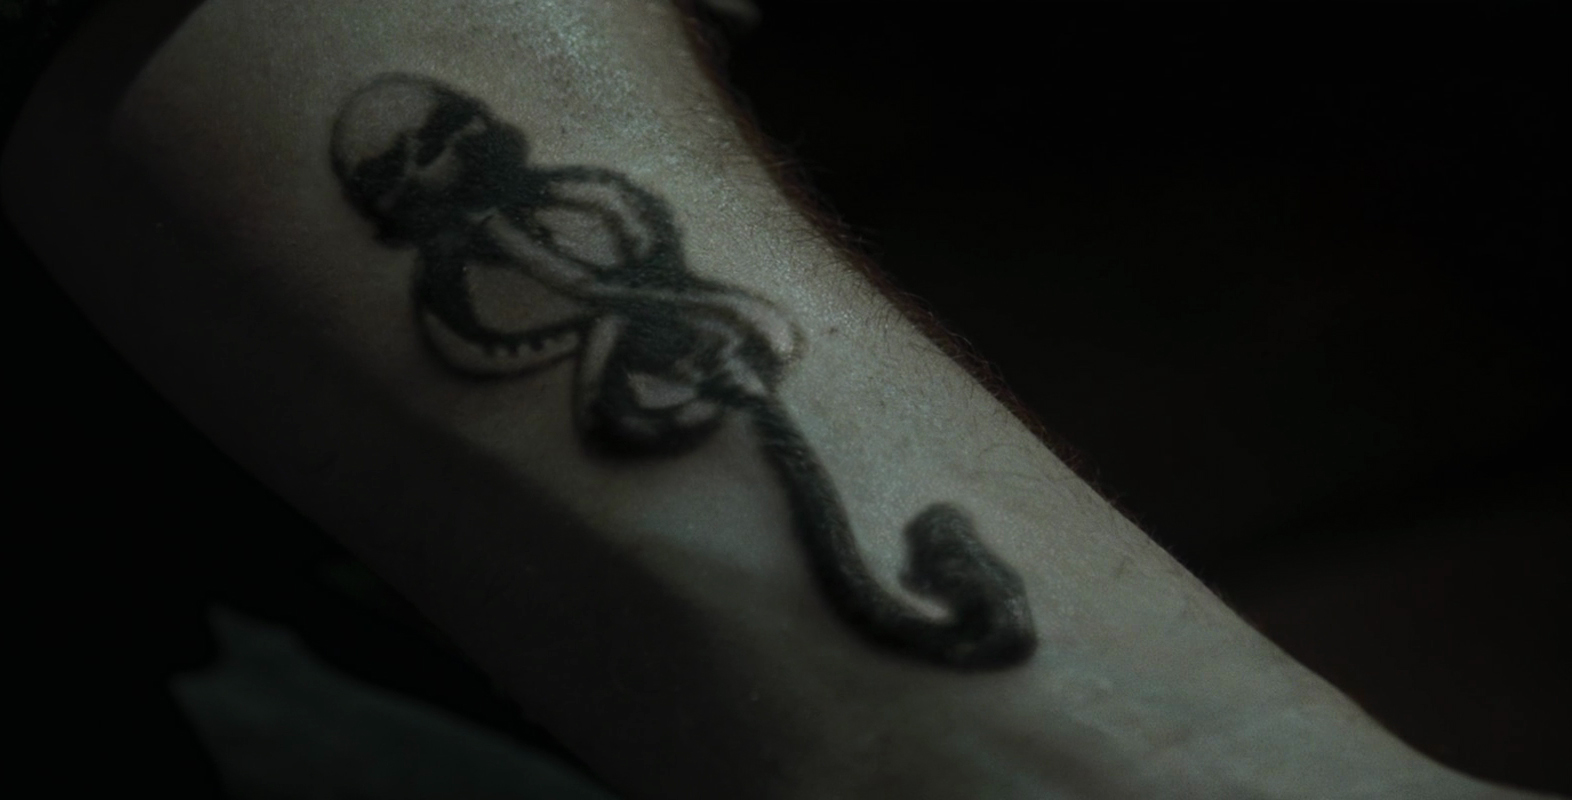 Dark Mark Harry Potter Wiki Fandom Powered By Wikia Snake Skeleton Diagram The Skull At Very On Arm